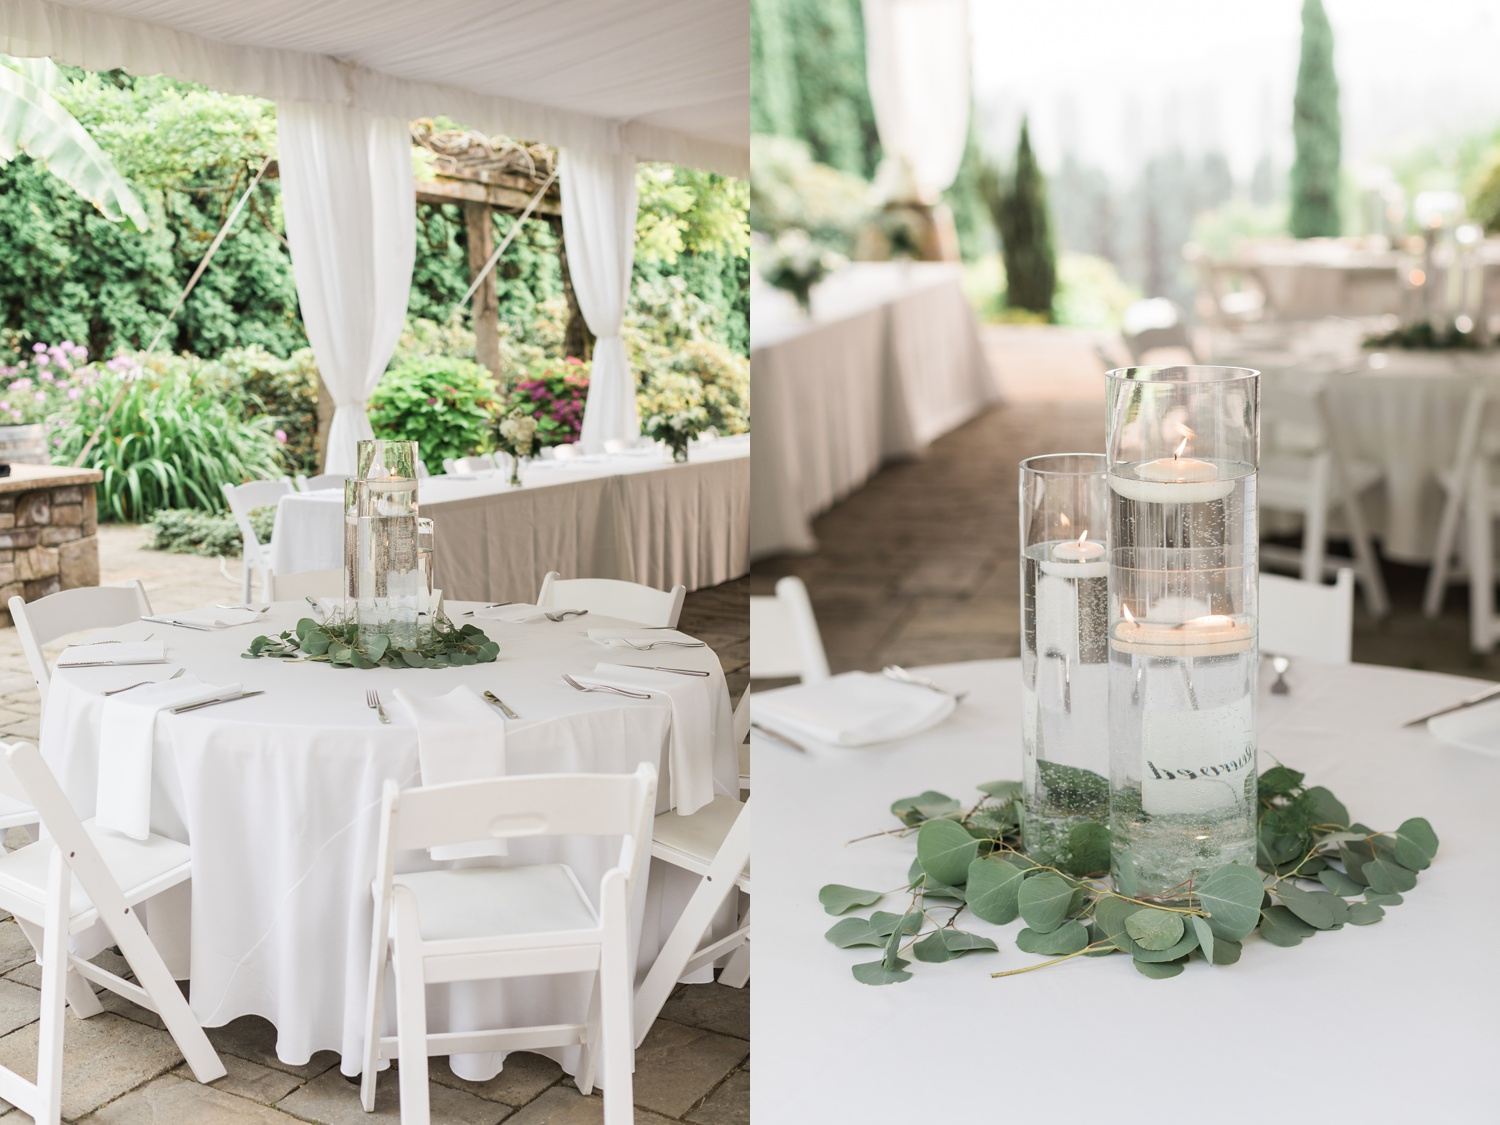 A photo of a reception area and table decor at a wedding at Chateau Lill in Woodinville, a wedding venue near Seattle, WA. | Joanna Monger Photography | Seattle & Snohomish Photographer